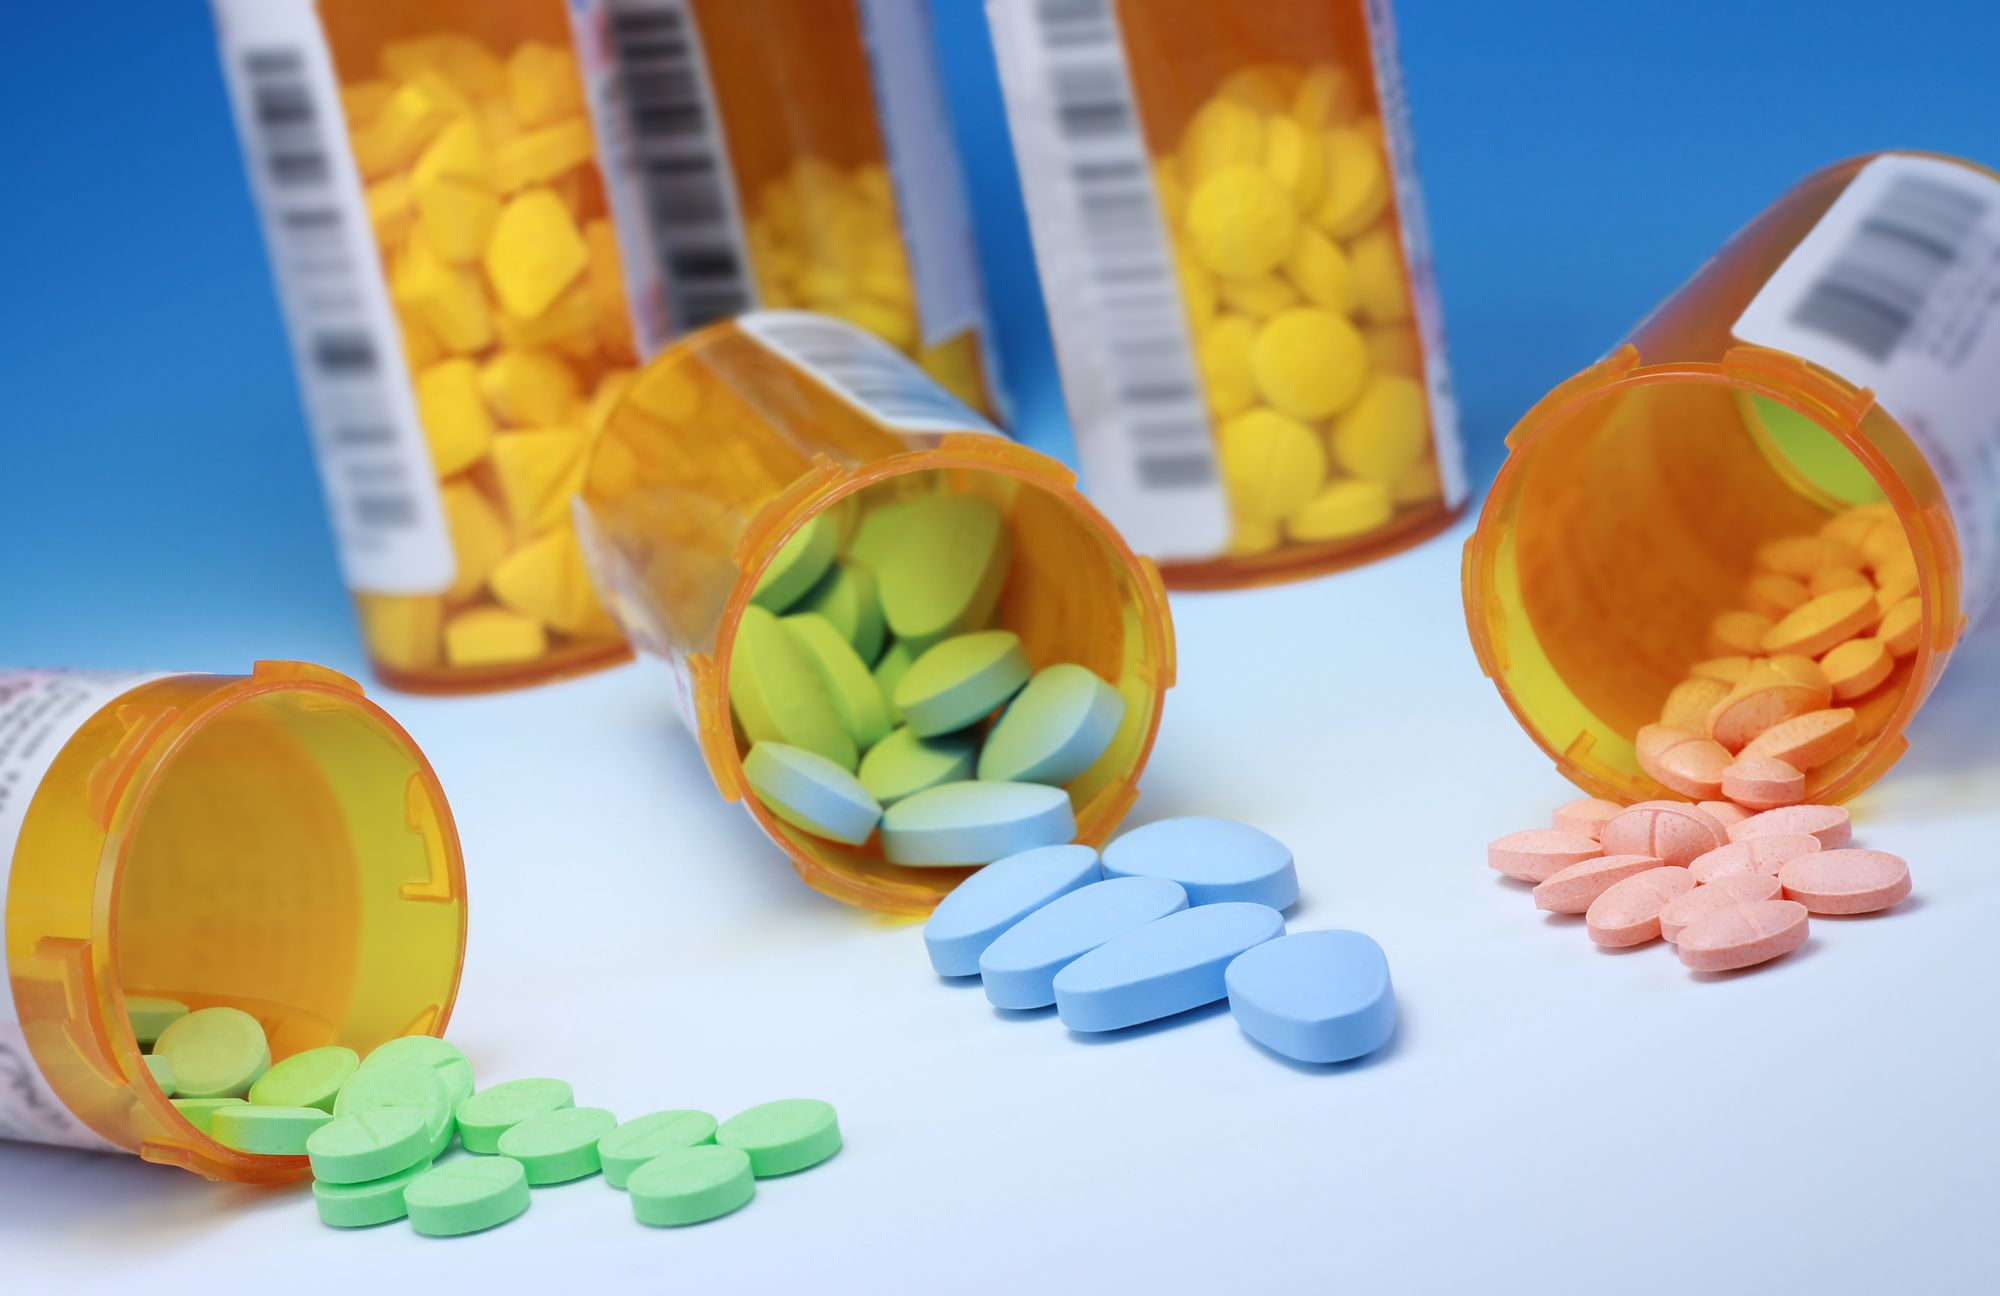 How You Should Buy Anxiety Medications Online